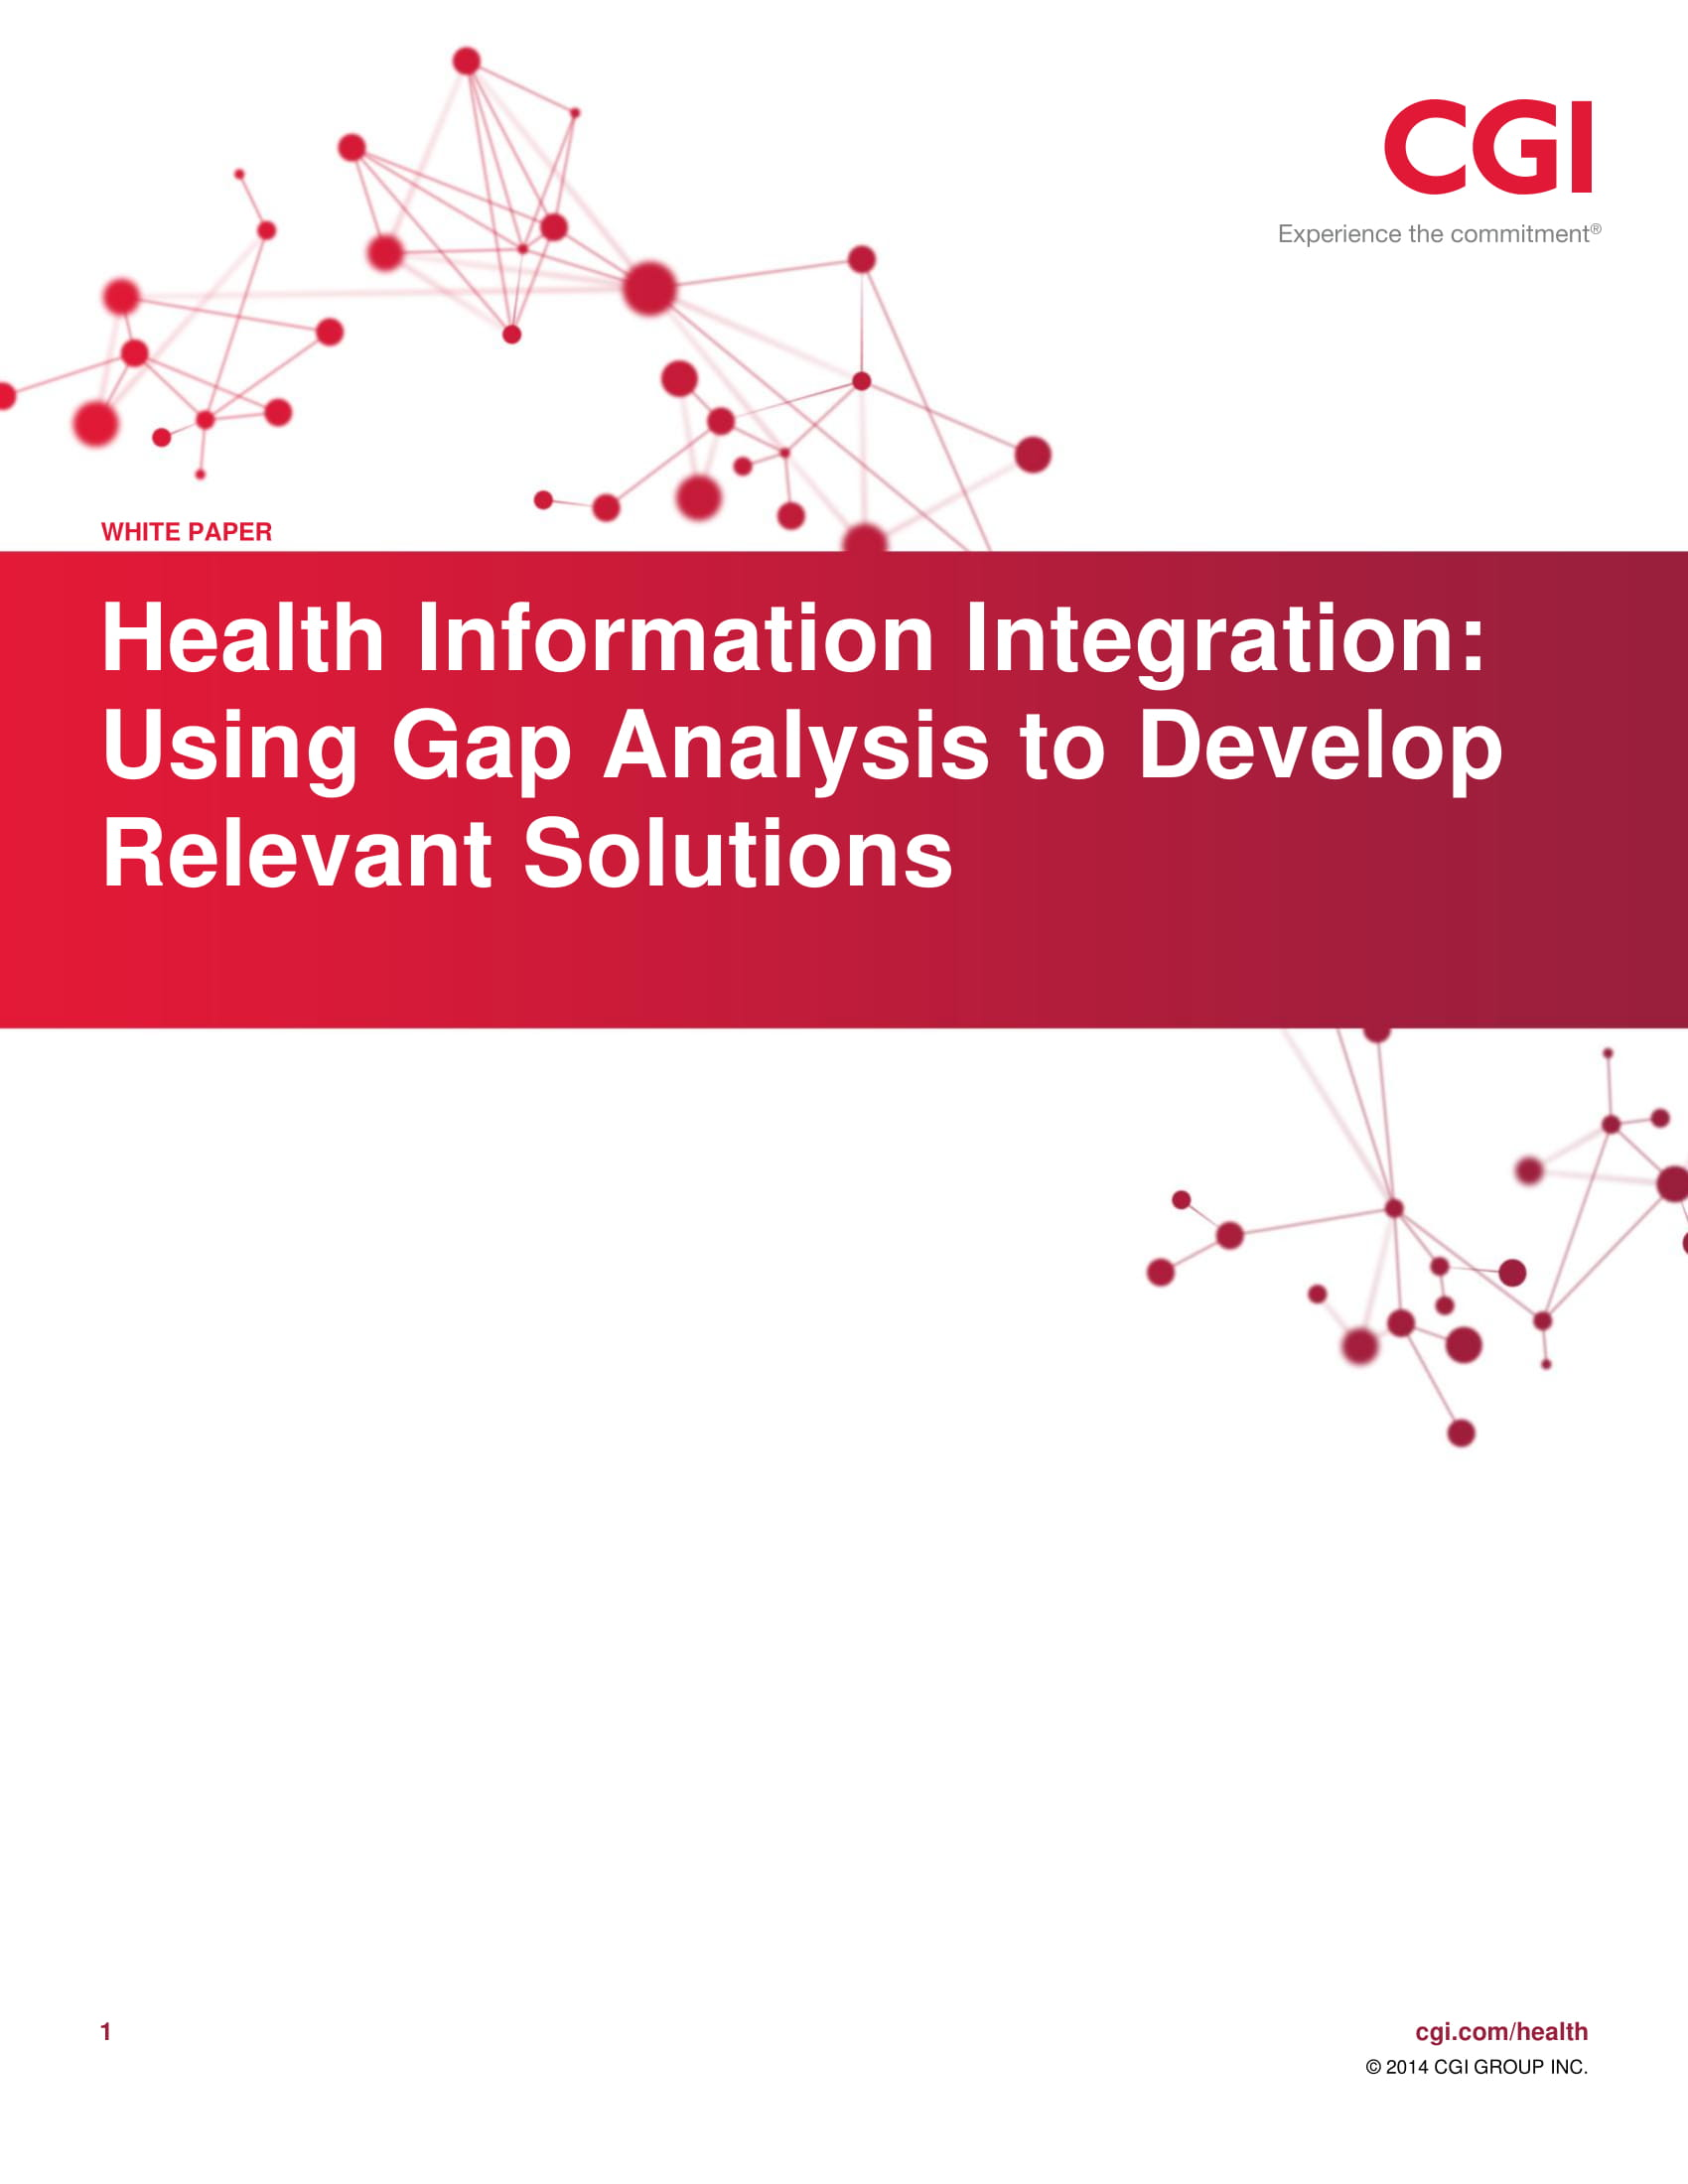 health information integration using gap analysis to develop relevant solutions example 01